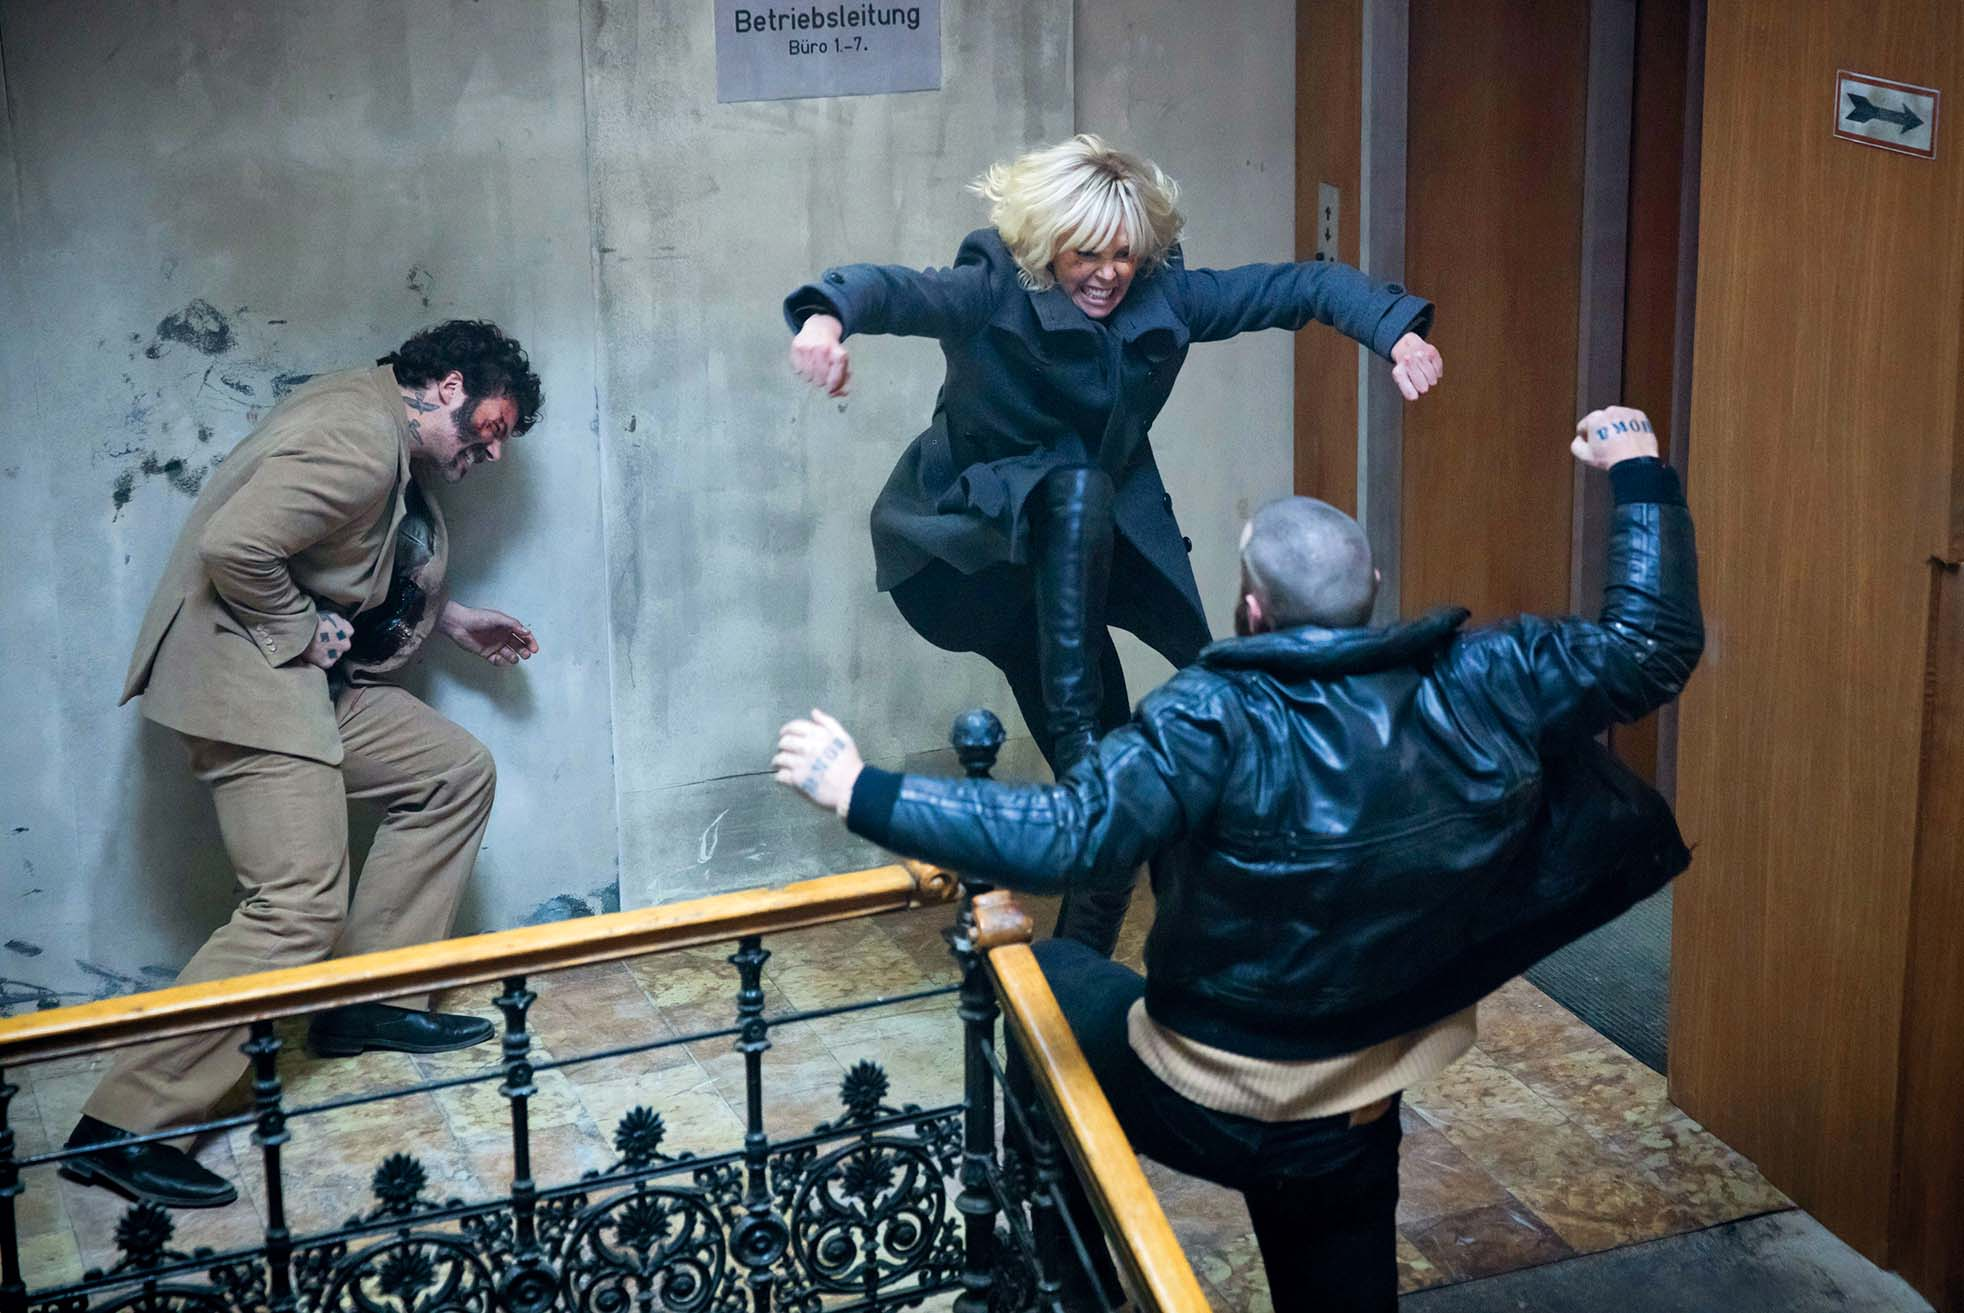 Atomic Blonde (2017)  Charlize Theron, Greg Rementer & Daniel Hargrave   *Filmstill - Editorial Use Only*, Image: 361975342, License: Rights-managed, Restrictions: Filmstill // HANDOUT / EDITORIAL USE ONLY! Please note: Fees charged by the agency are for the agencyÕs services only, and do not, nor are they intended to, convey to the user any ownership of Copyright or License in the material. The agency does not claim any ownership including but not limited to Copyright or License in the attached material. By publishing this material you expressly agree to indemnify and to hold the agency and its directors, shareholders and employees harmless from any loss, claims, damages, demands, expenses (including legal fees), or any causes of action or allegation against the agency arising out of or connected in any way with publication of the material. Images should only be used in connection with the event/movie (etc), e.g.: Real Name as Character Name in Film Title (year). Filmstill // HANDOUT / EDITORIAL USE ONLY! Please note: Fees charged by the agency are for the agency's services only, and do not, nor are they intended to, convey to the user any ownership of Copyright or License in the material. The agency does not claim any ownership including but not limited to Copyright or License in the attached material. By publishing this material you expressly agree to indemnify and to hold the agency and its directors, shareholders and employees harmless from any loss, claims, damages, demands, expenses (including legal fees), or any causes of action or allegation against the agency arising out of or connected in any way with publication of the material. Images should only be used in connection with the event/movie (etc), e.g.: Real Name as Character Name in Film Title (year)., Model Release: no, Credit line: Image  Capital Pictures / Film Stills / Profimedia